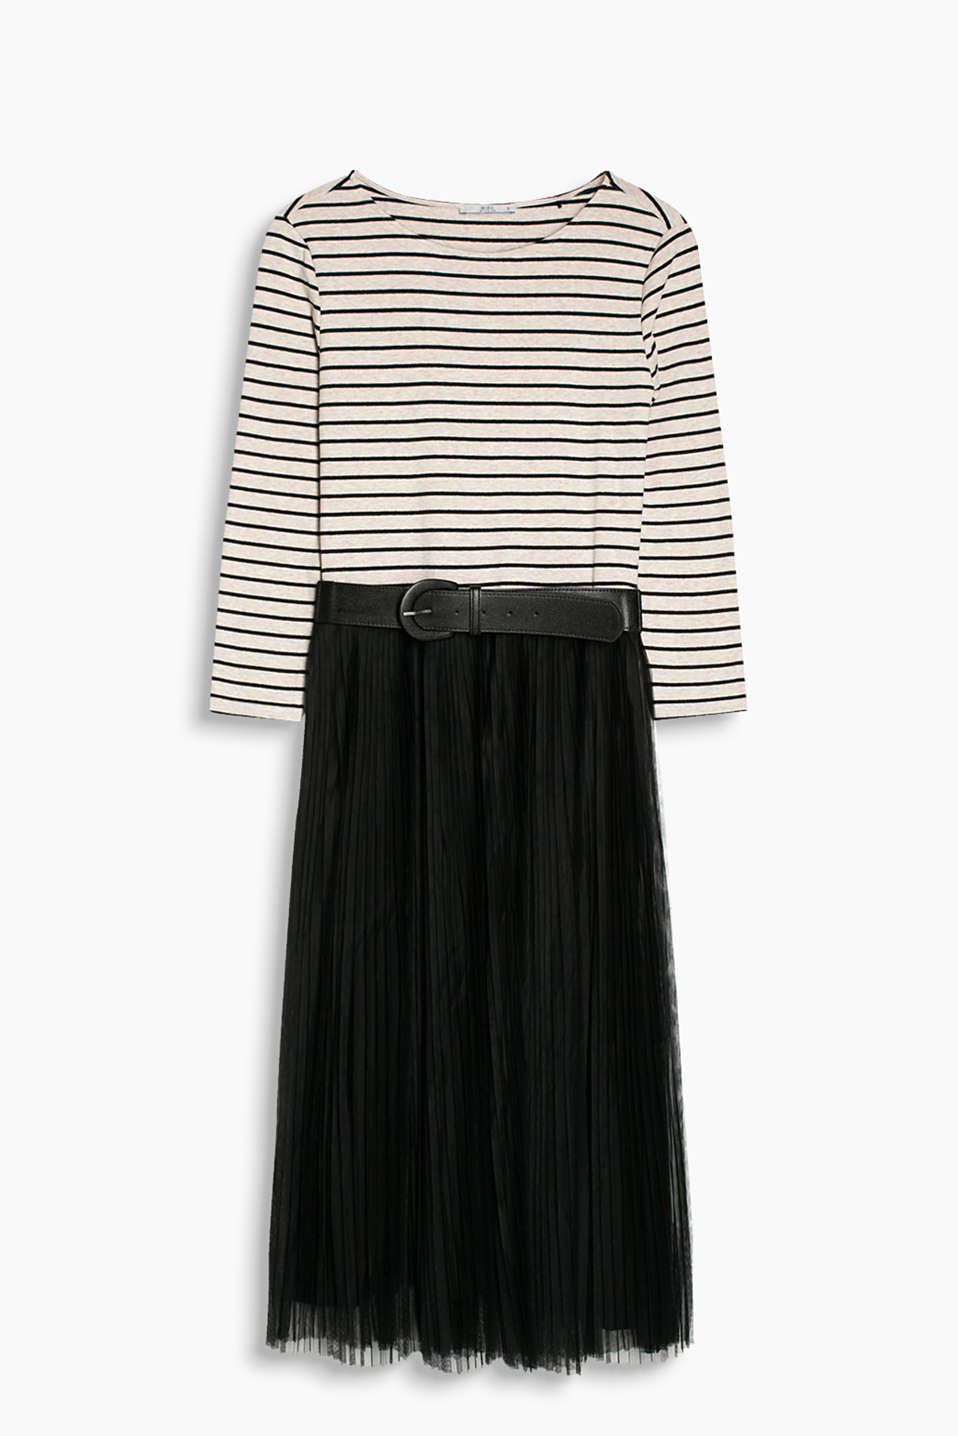 Midi dress with a striped top made of stretch jersey and a pleated tulle skirt